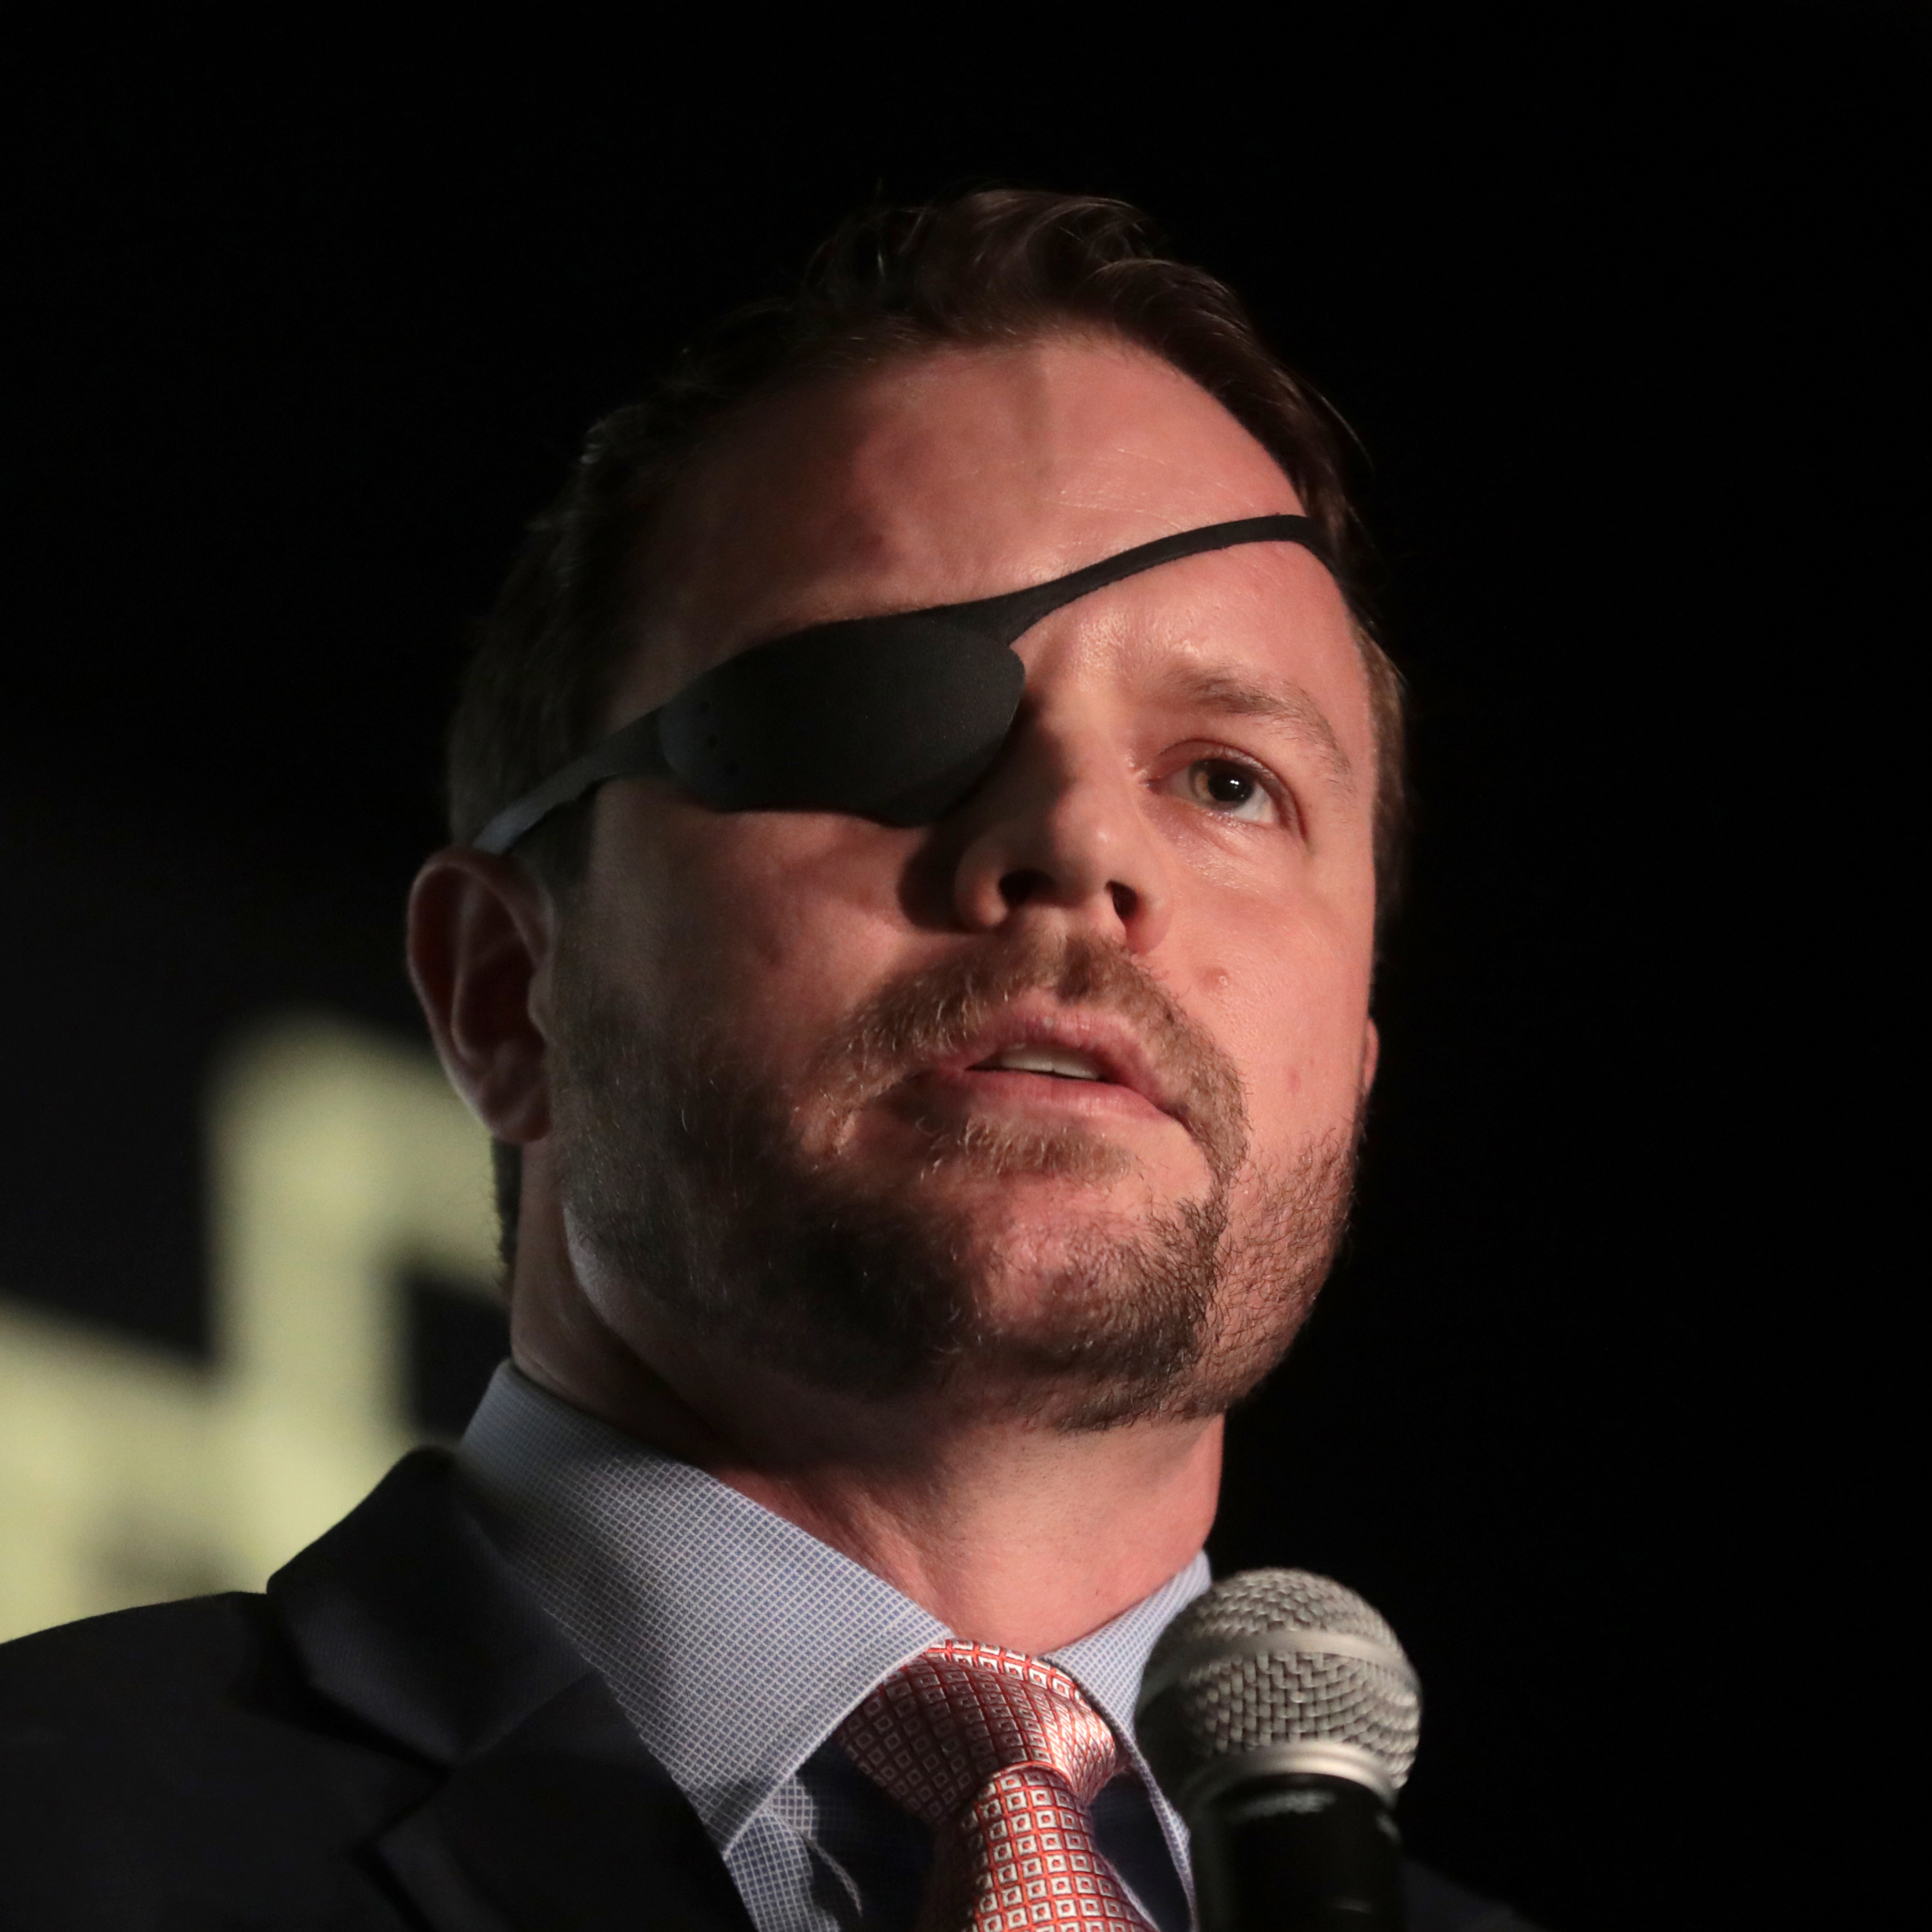 Dan Crenshaw, Texas 2nd District Congressman and Retired Navy Seal Lt. Commander